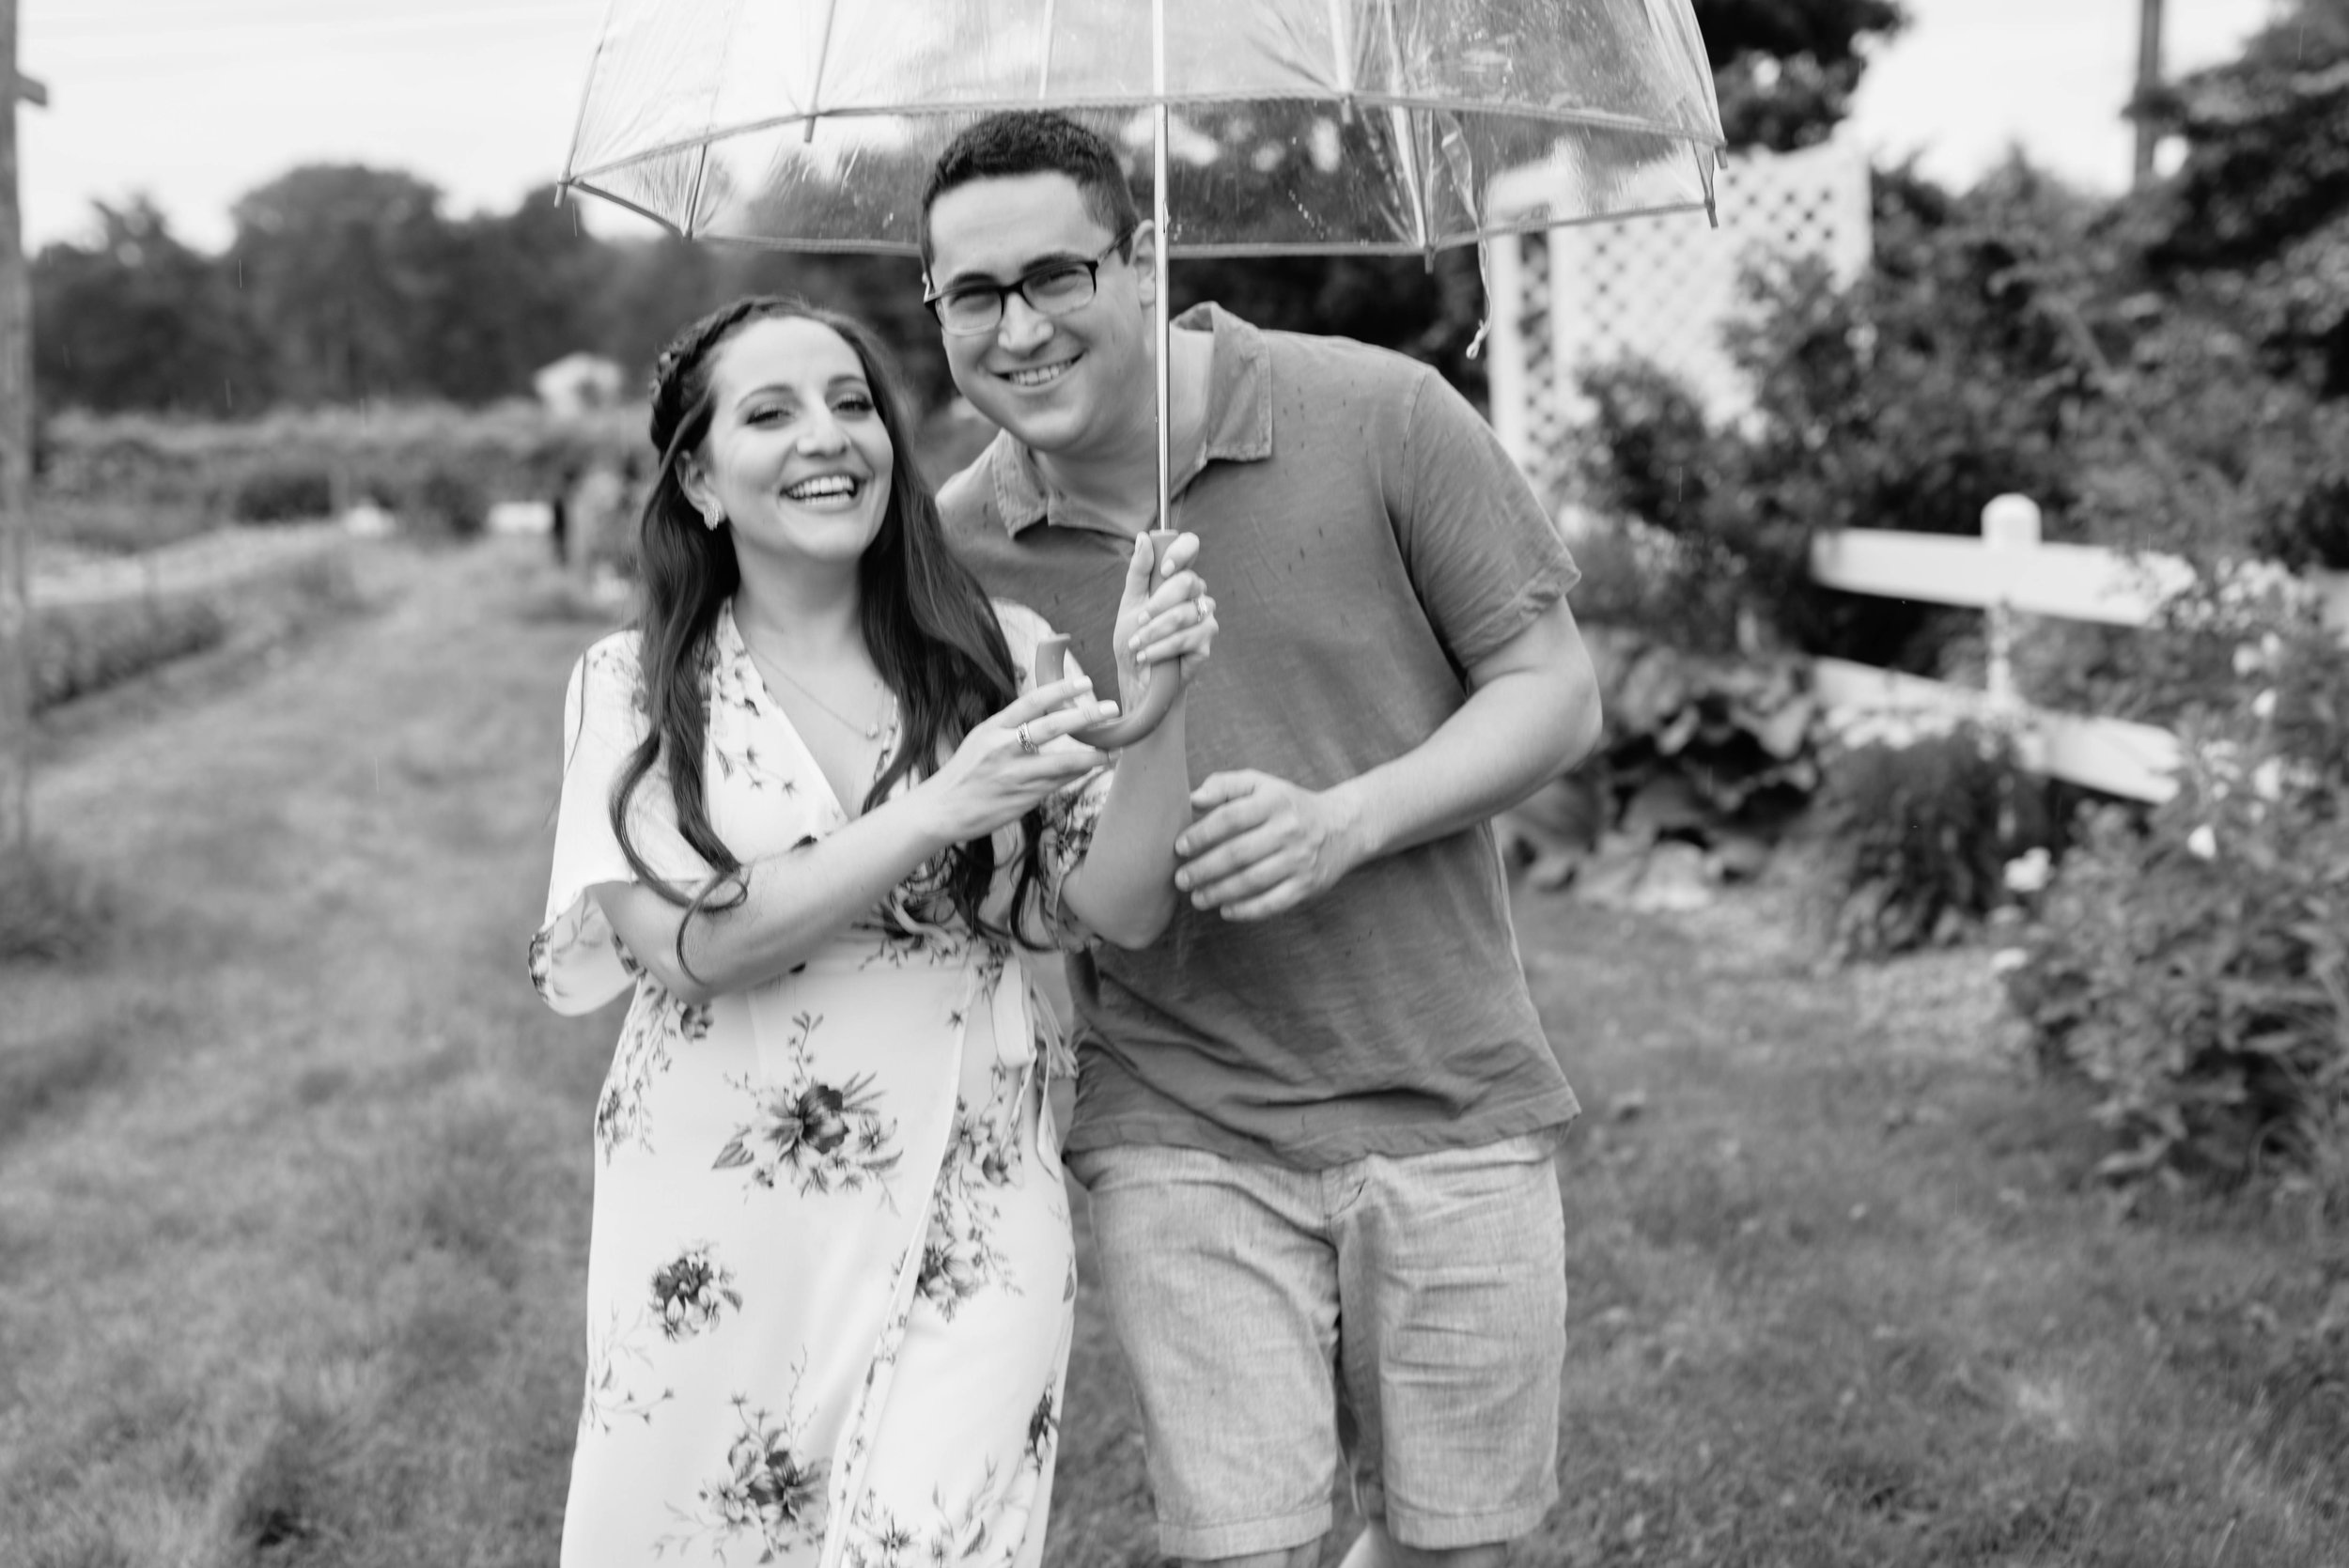 Lauren+Matt- Princeton Engagement Session- Terhune Orchards- New Jersey- Olivia Christina Photo-12.jpg